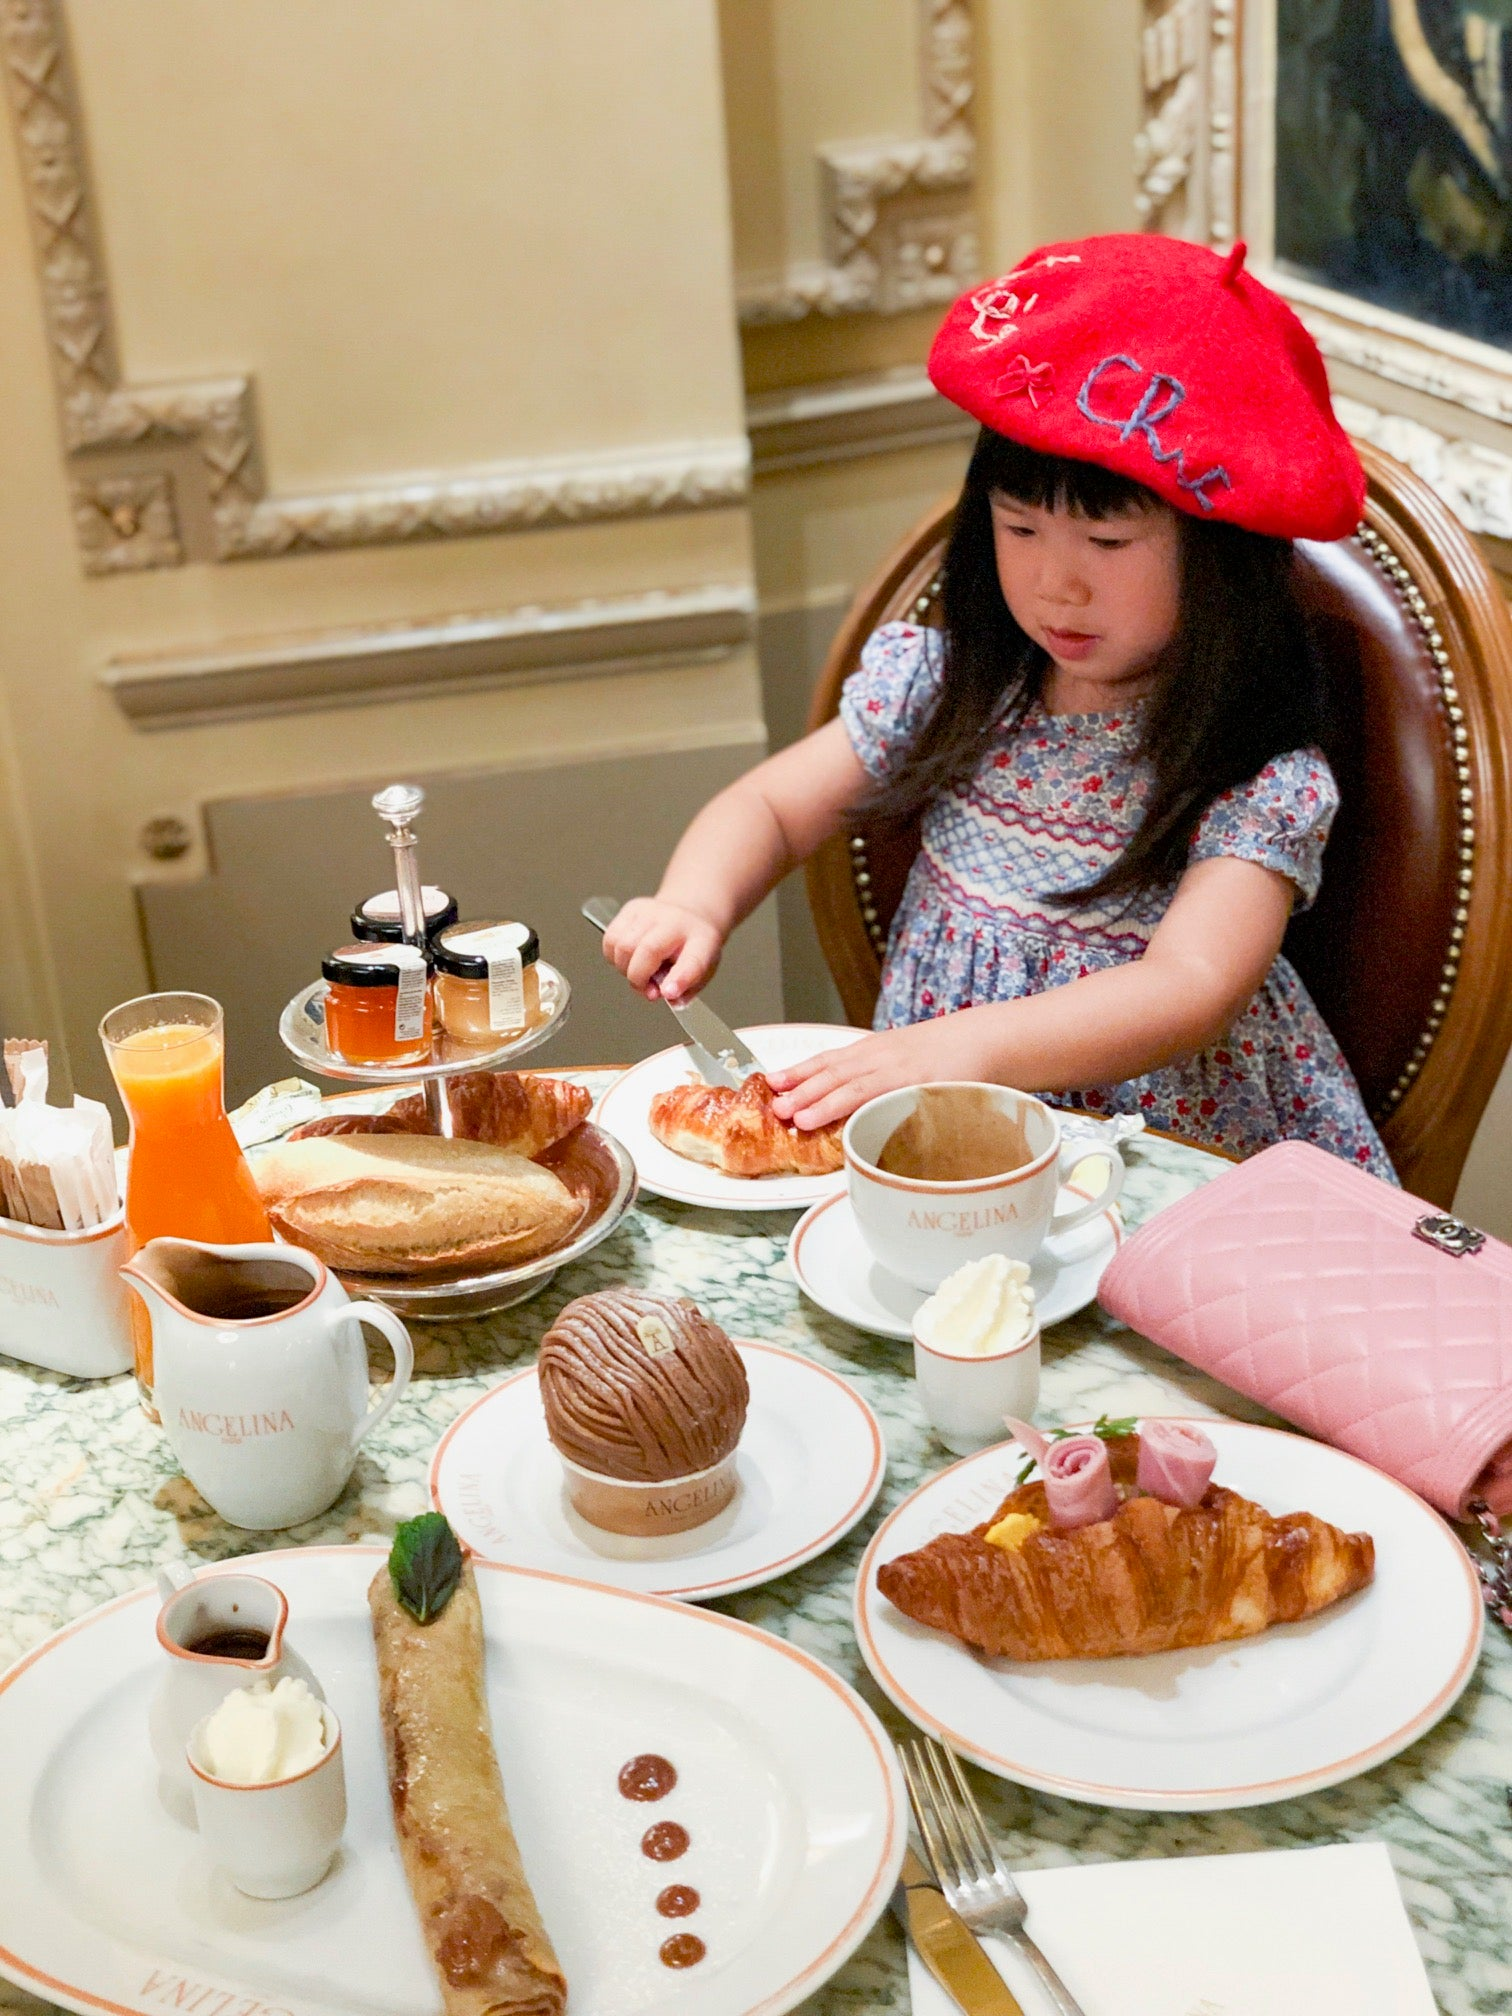 Paris through the eyes of a child French breakfast